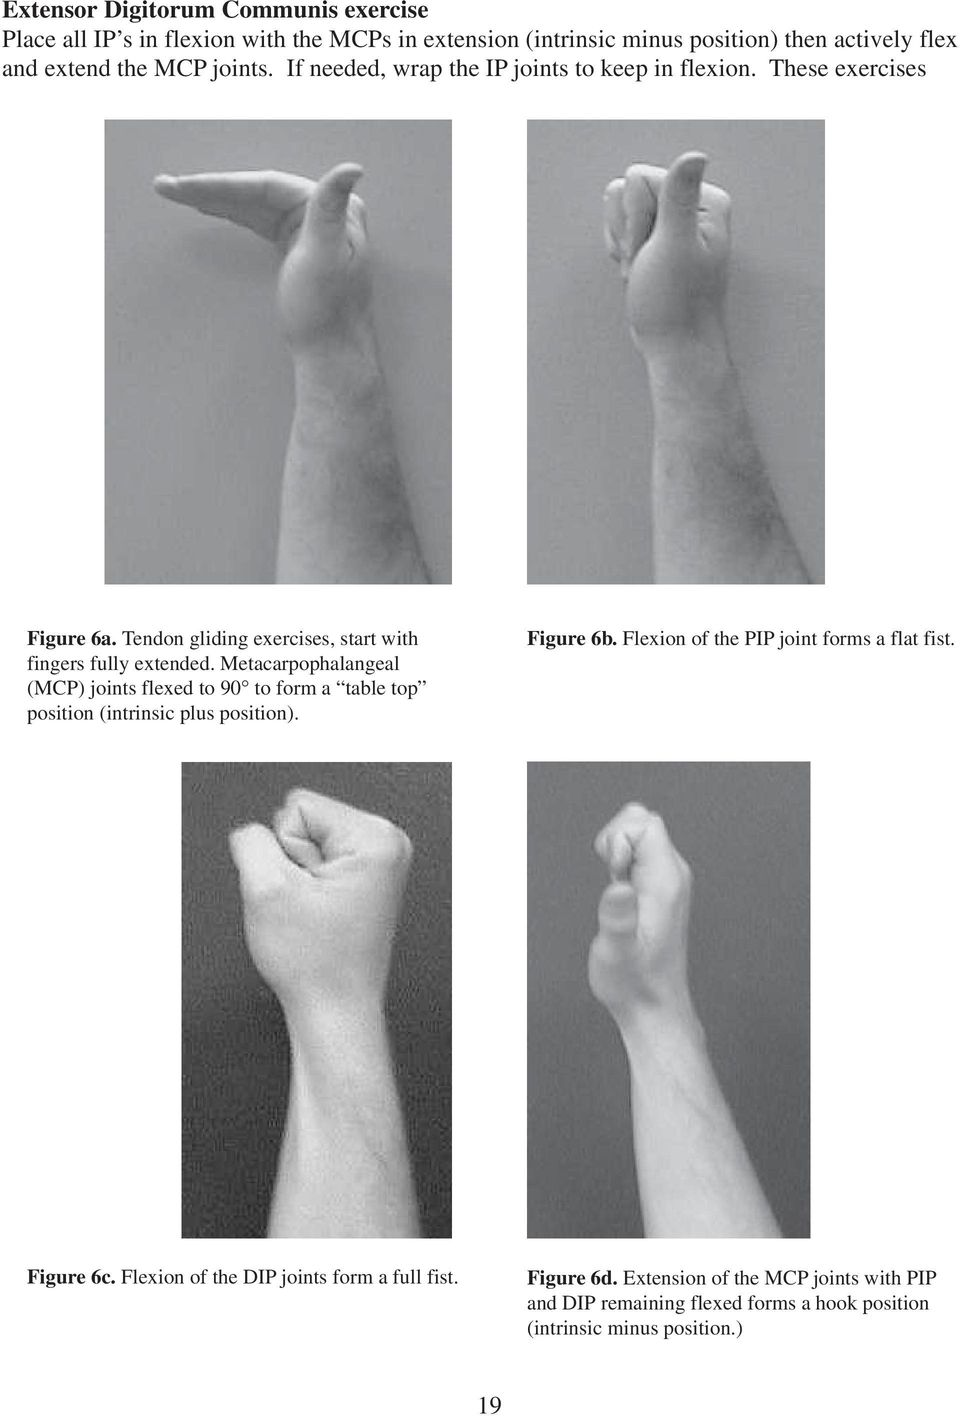 Metacarpophalangeal (MCP) joints flexed to 90 to form a table top position (intrinsic plus position). Figure 6b. Flexion of the PIP joint forms a flat fist.